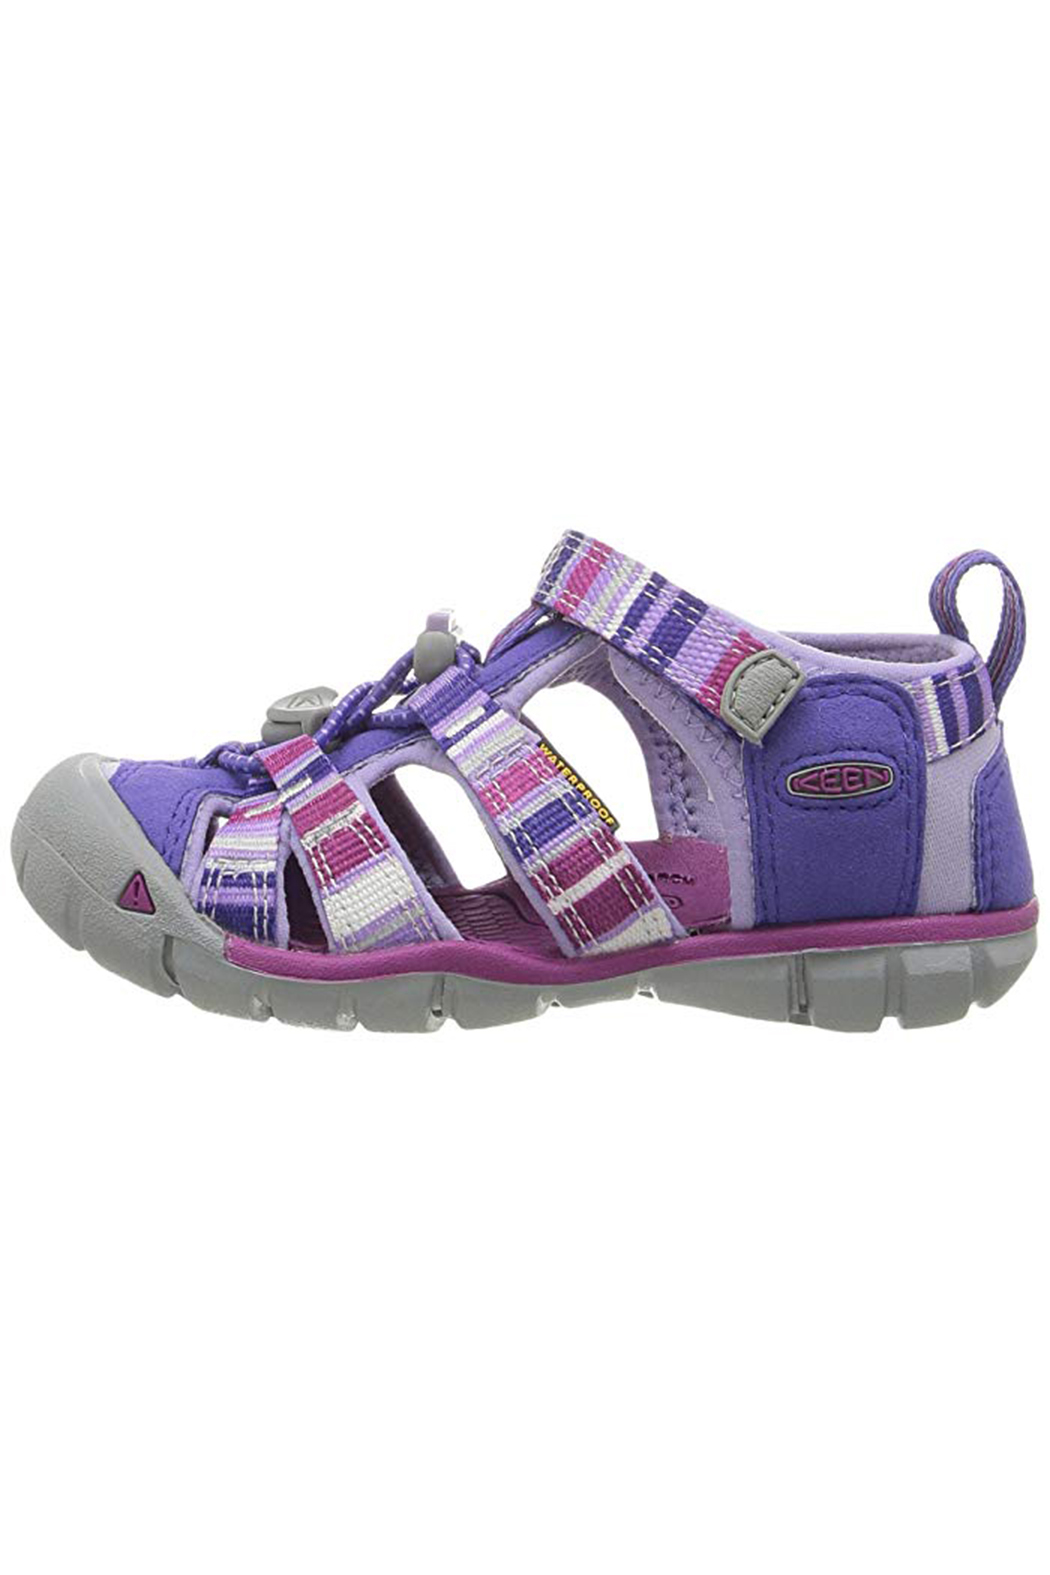 Keen Seacamp II CNX Sandal Children/Youth - Back Cropped Image